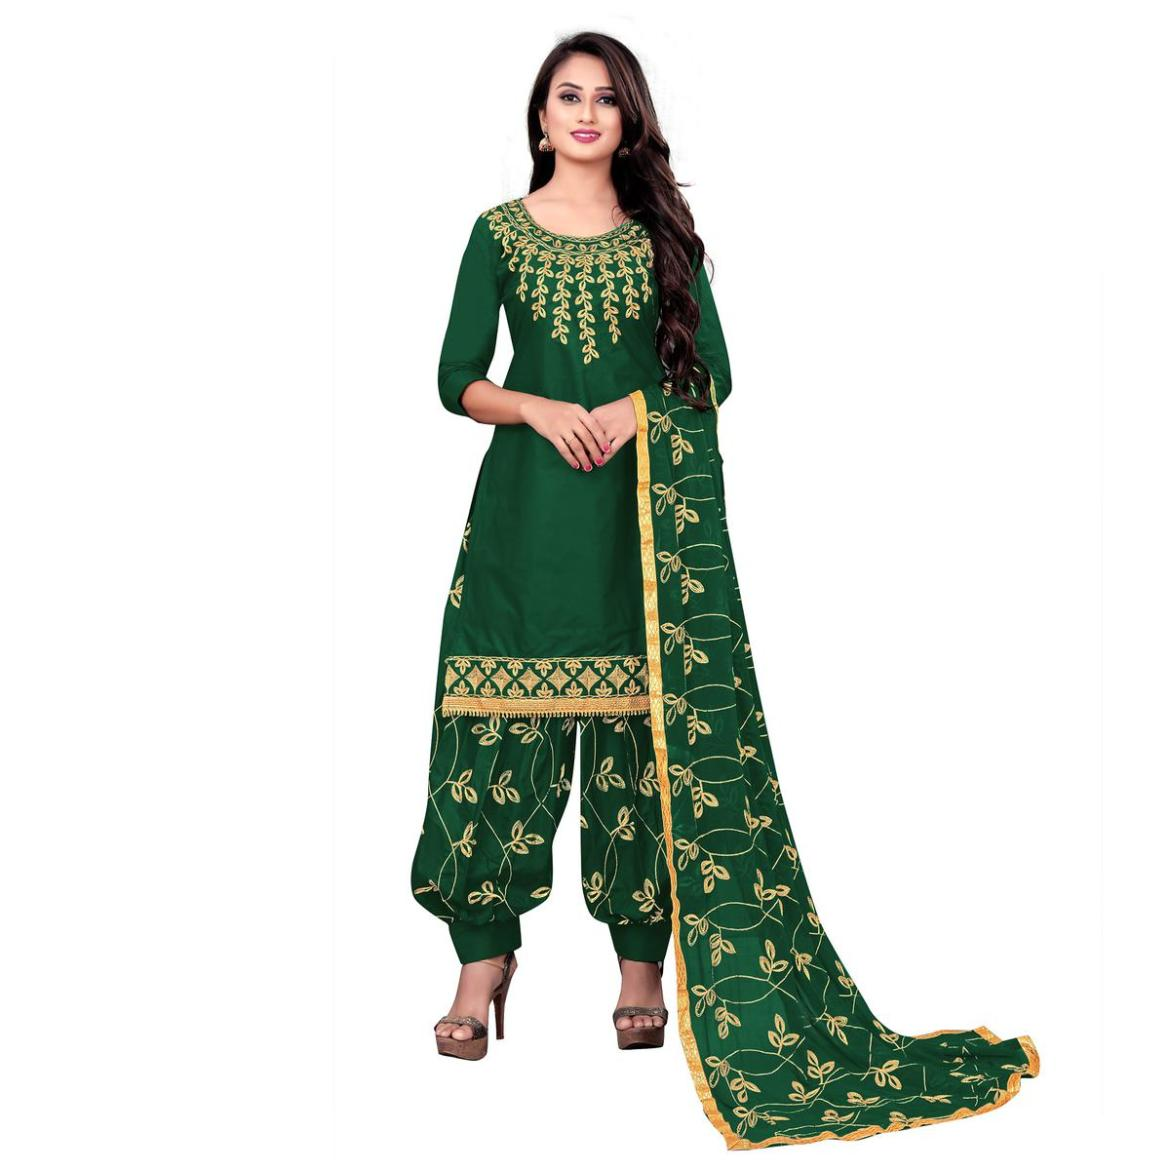 IRIS - Green Colored Party Wear Embroidered Cotton Dress Material